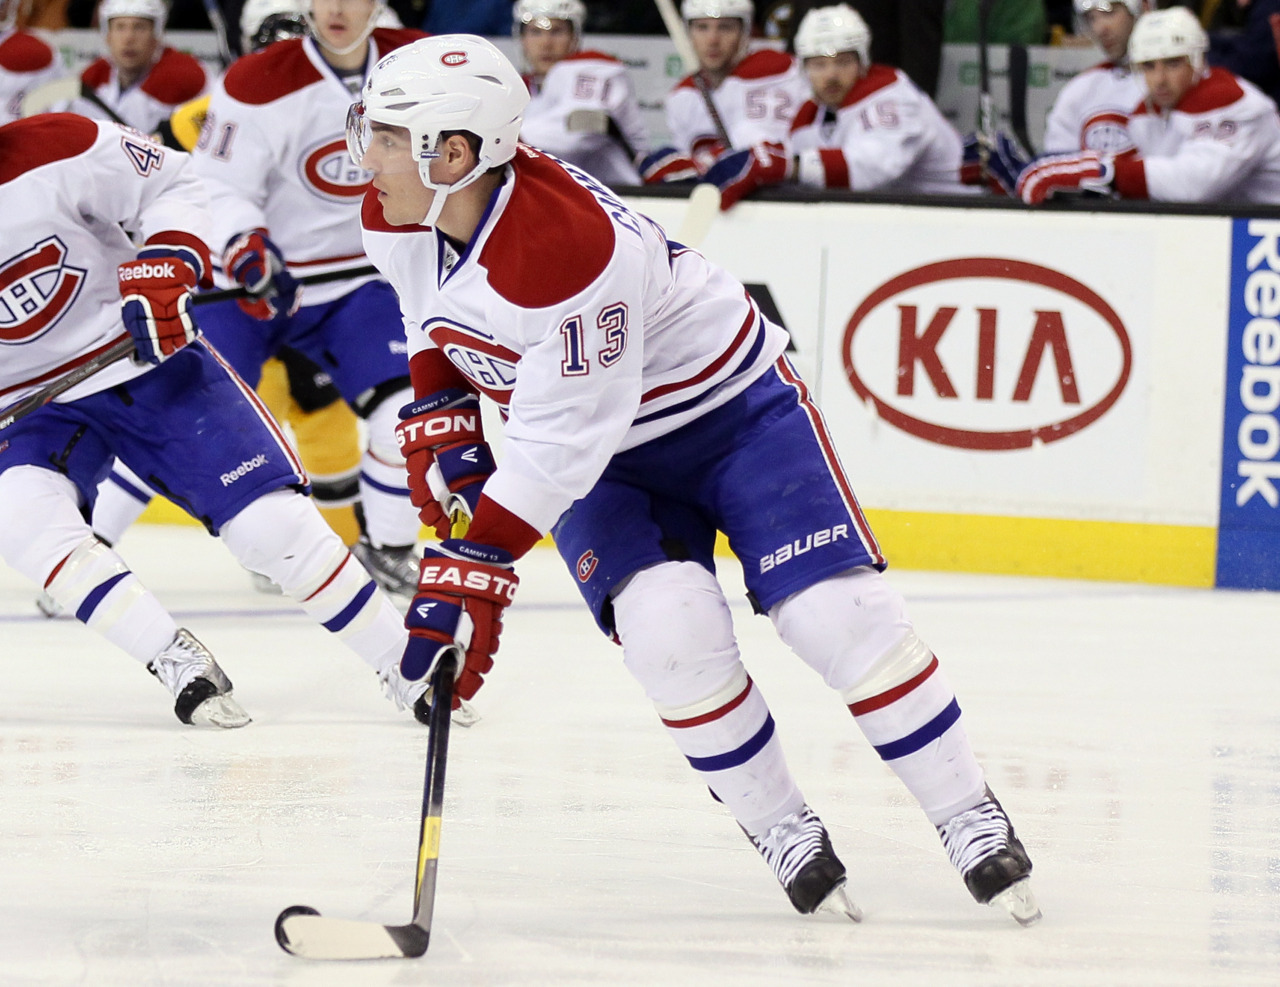 Going, going, goneWell, uh, that was kind of weird. One minute, Canadiens forward Mike Cammalleri is playing against the Bruins in Boston. The next, he's in a cab to the hotel during the third period because he was traded mid-game. Yes, that actually happened. Photo: Elsa/Getty Images